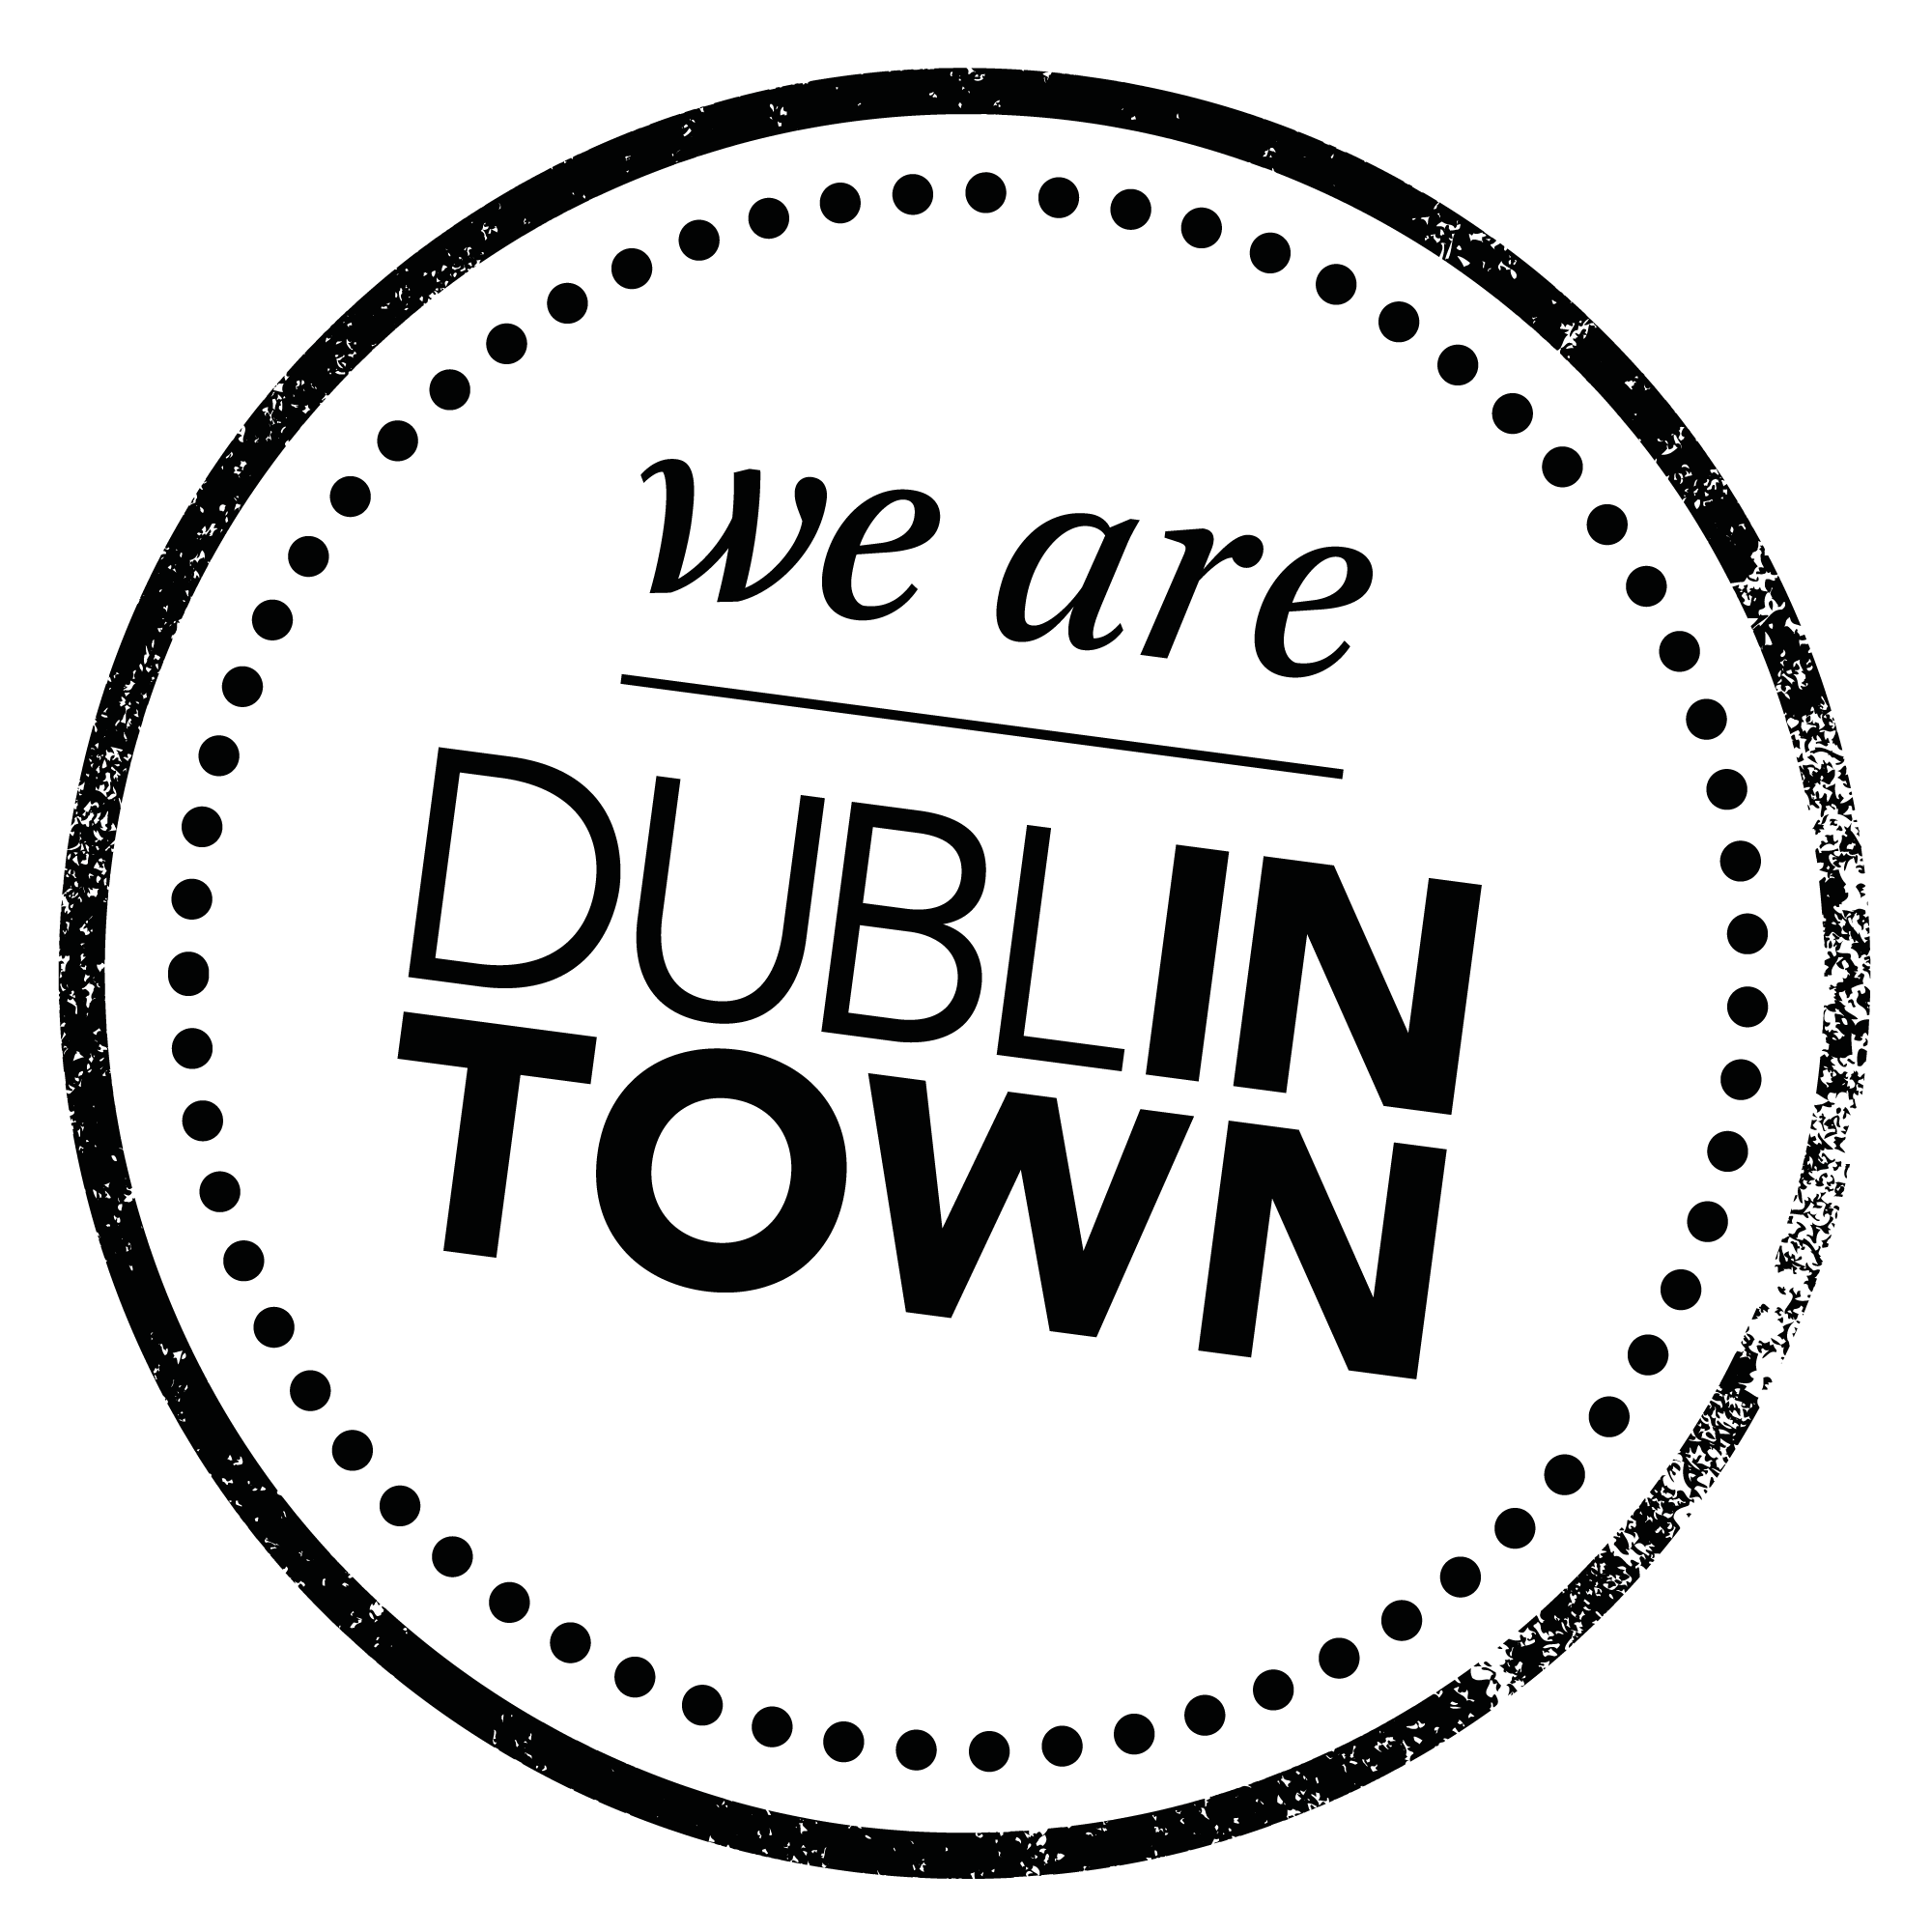 Evidence stamp png. Dublintown statement regarding comments